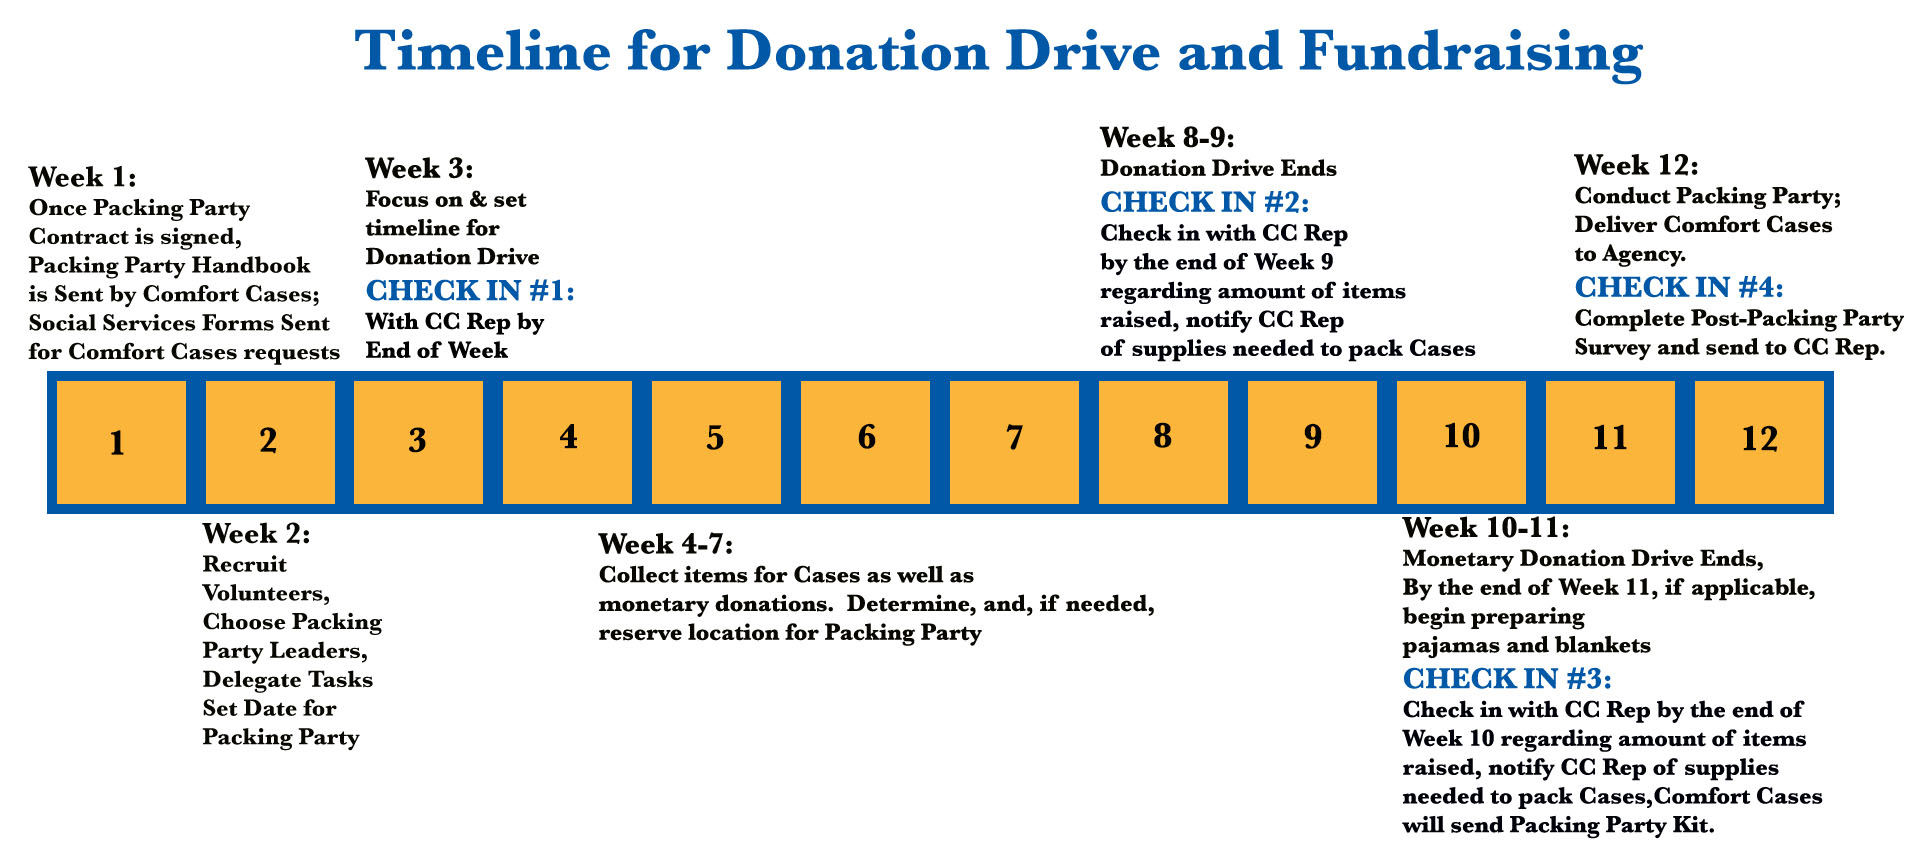 donation drive and fundraising packing party timeline.jpg